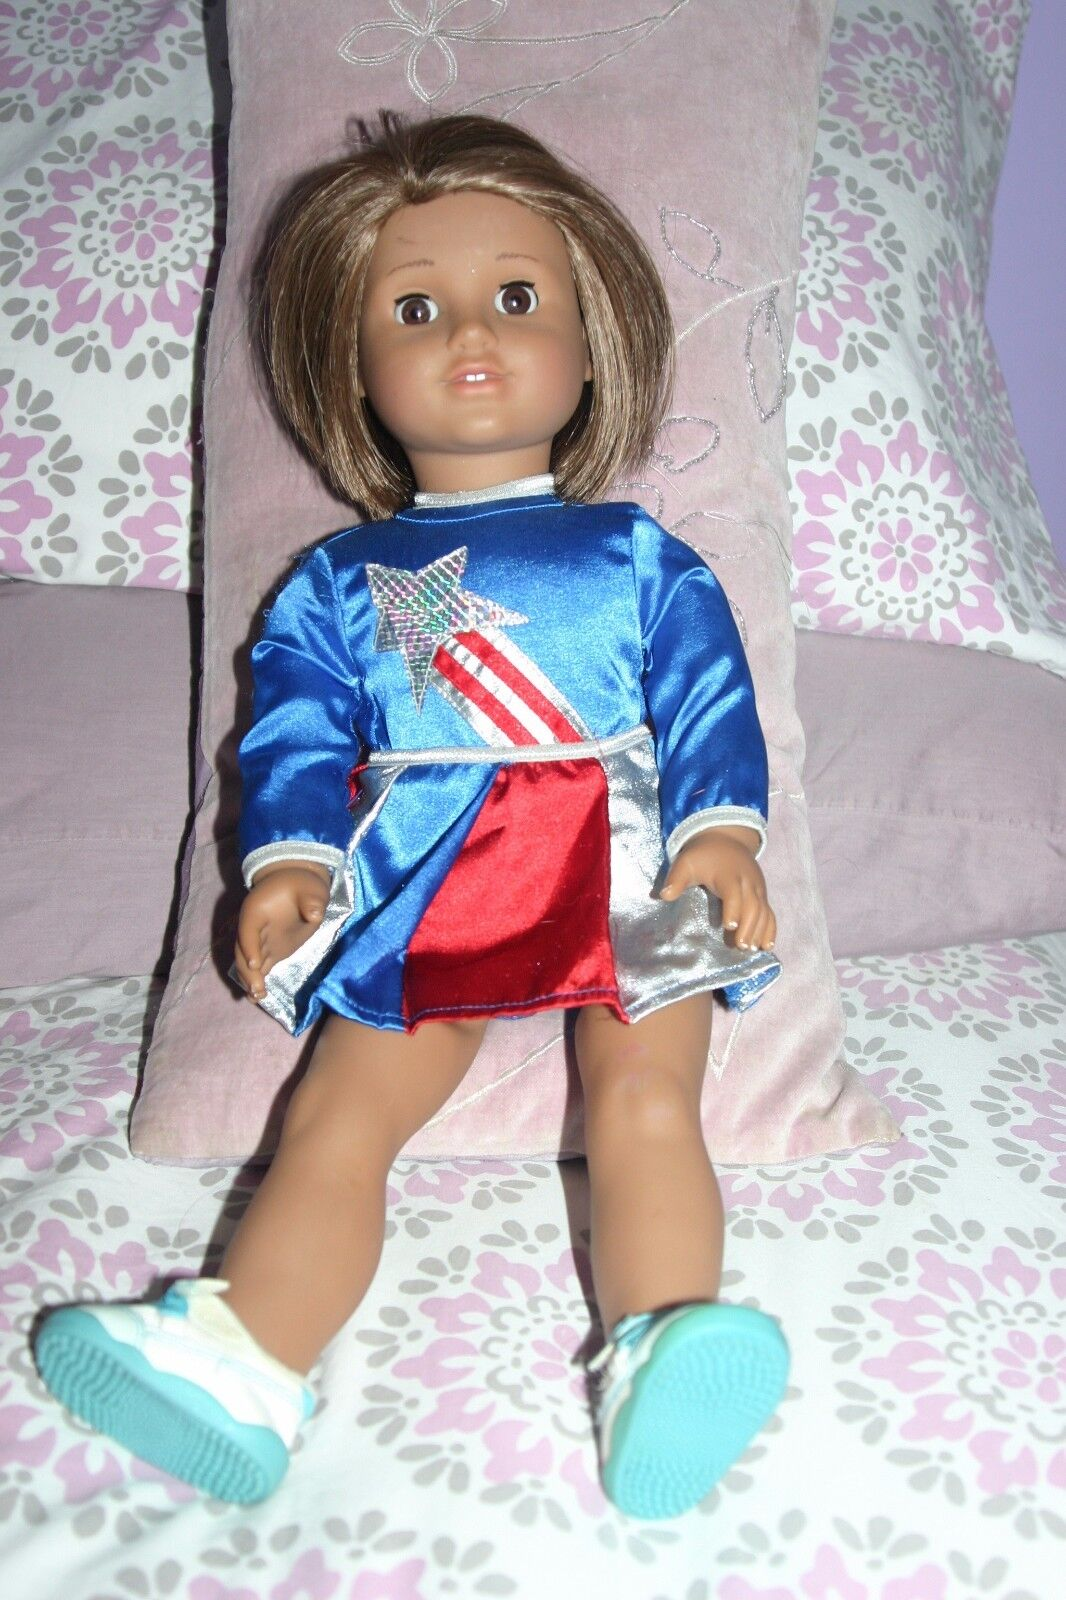 American Girl Doll Just Like Me Strawb-Blonde short hair with braun eyes..Excl